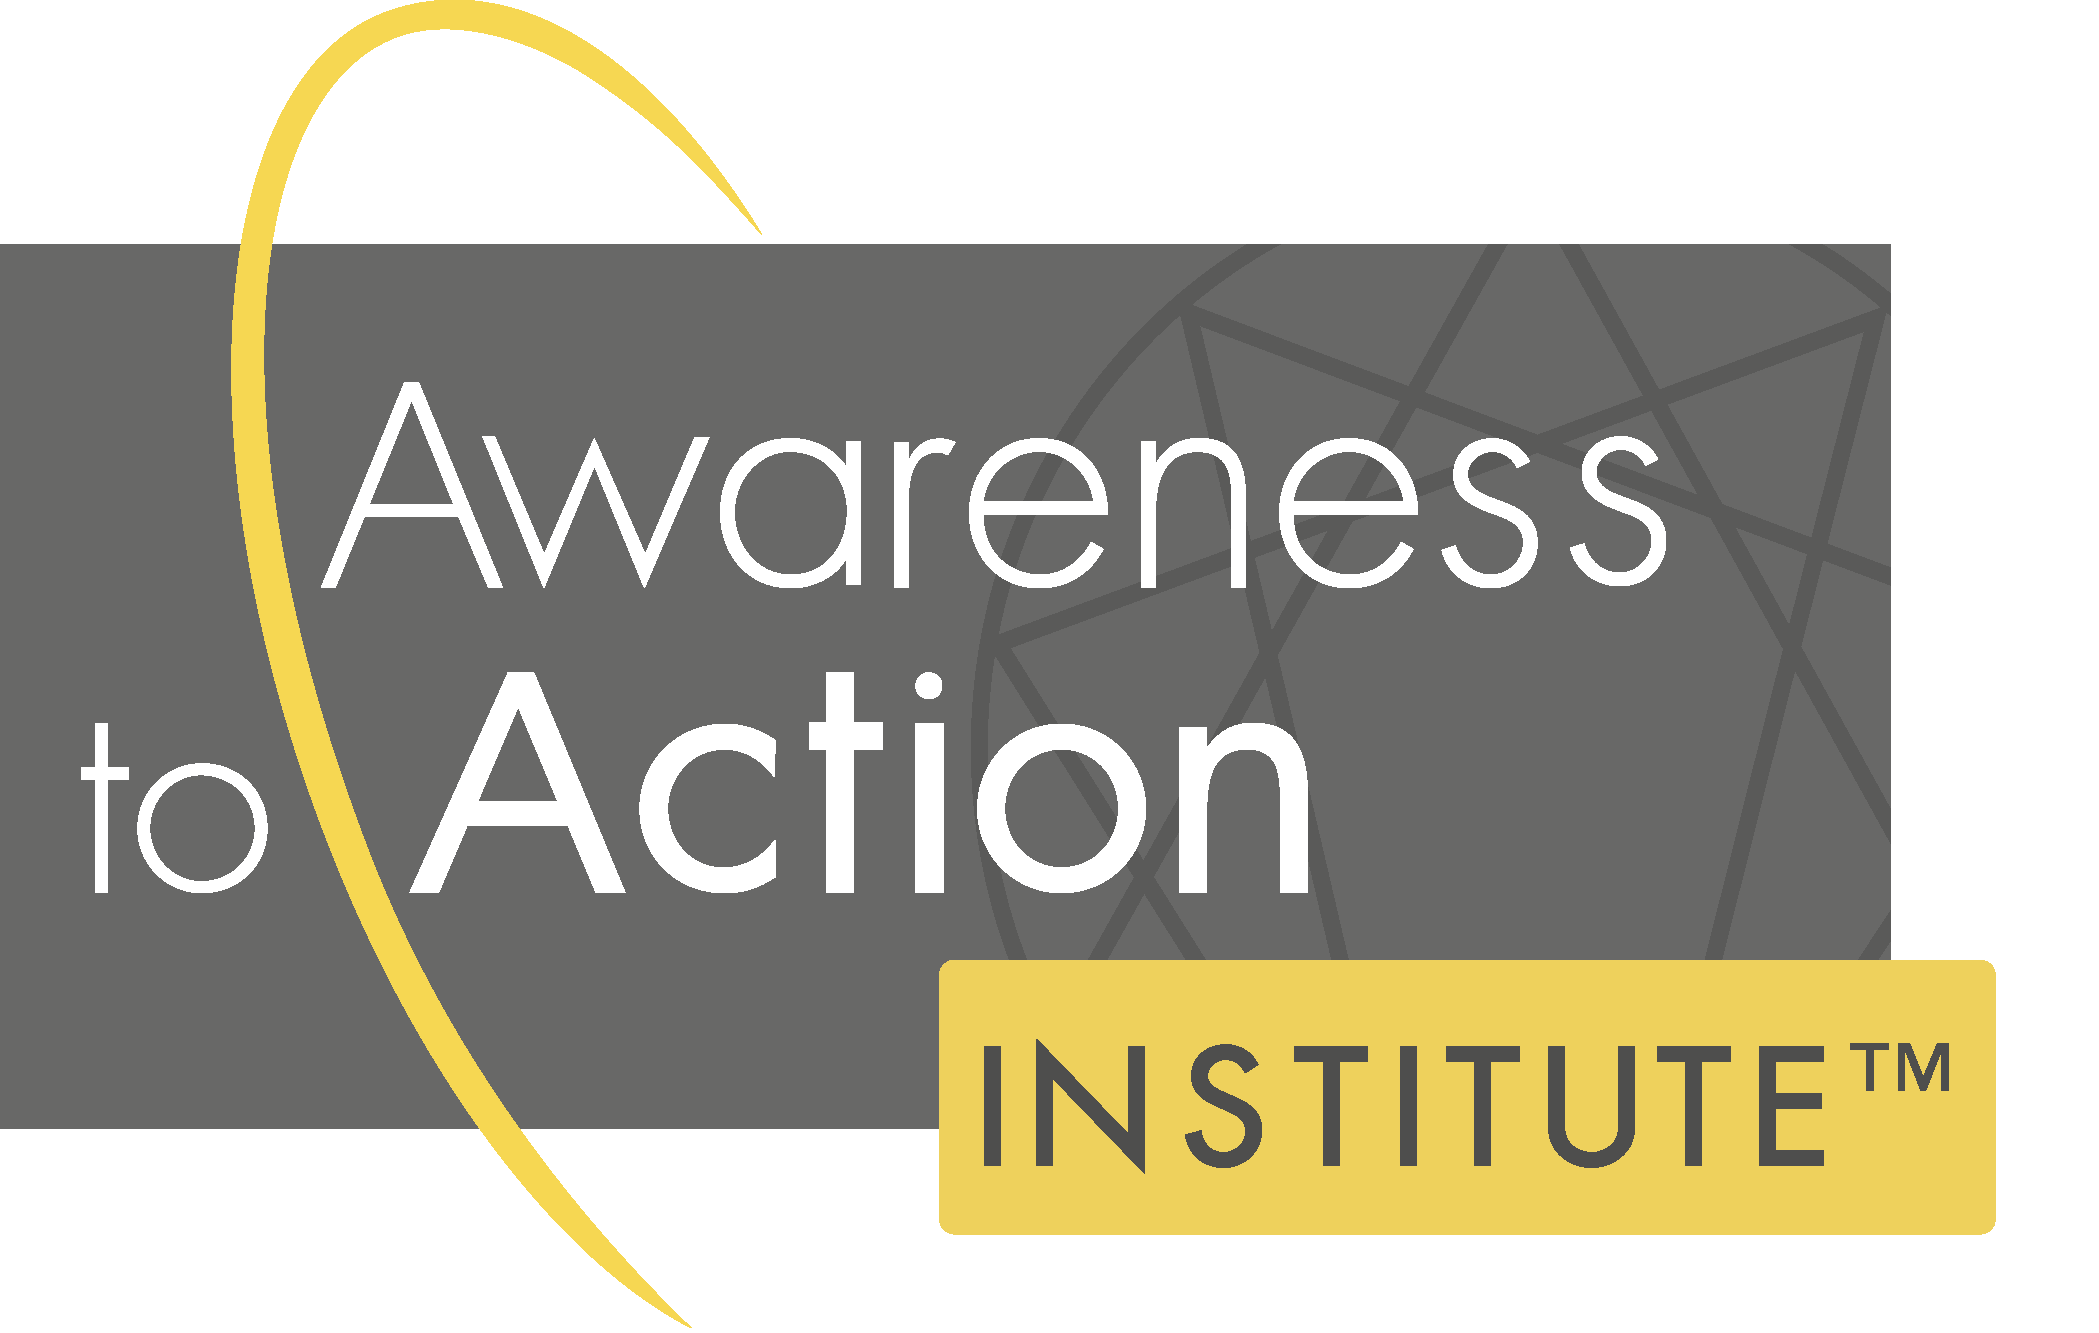 Awareness to Action Institute